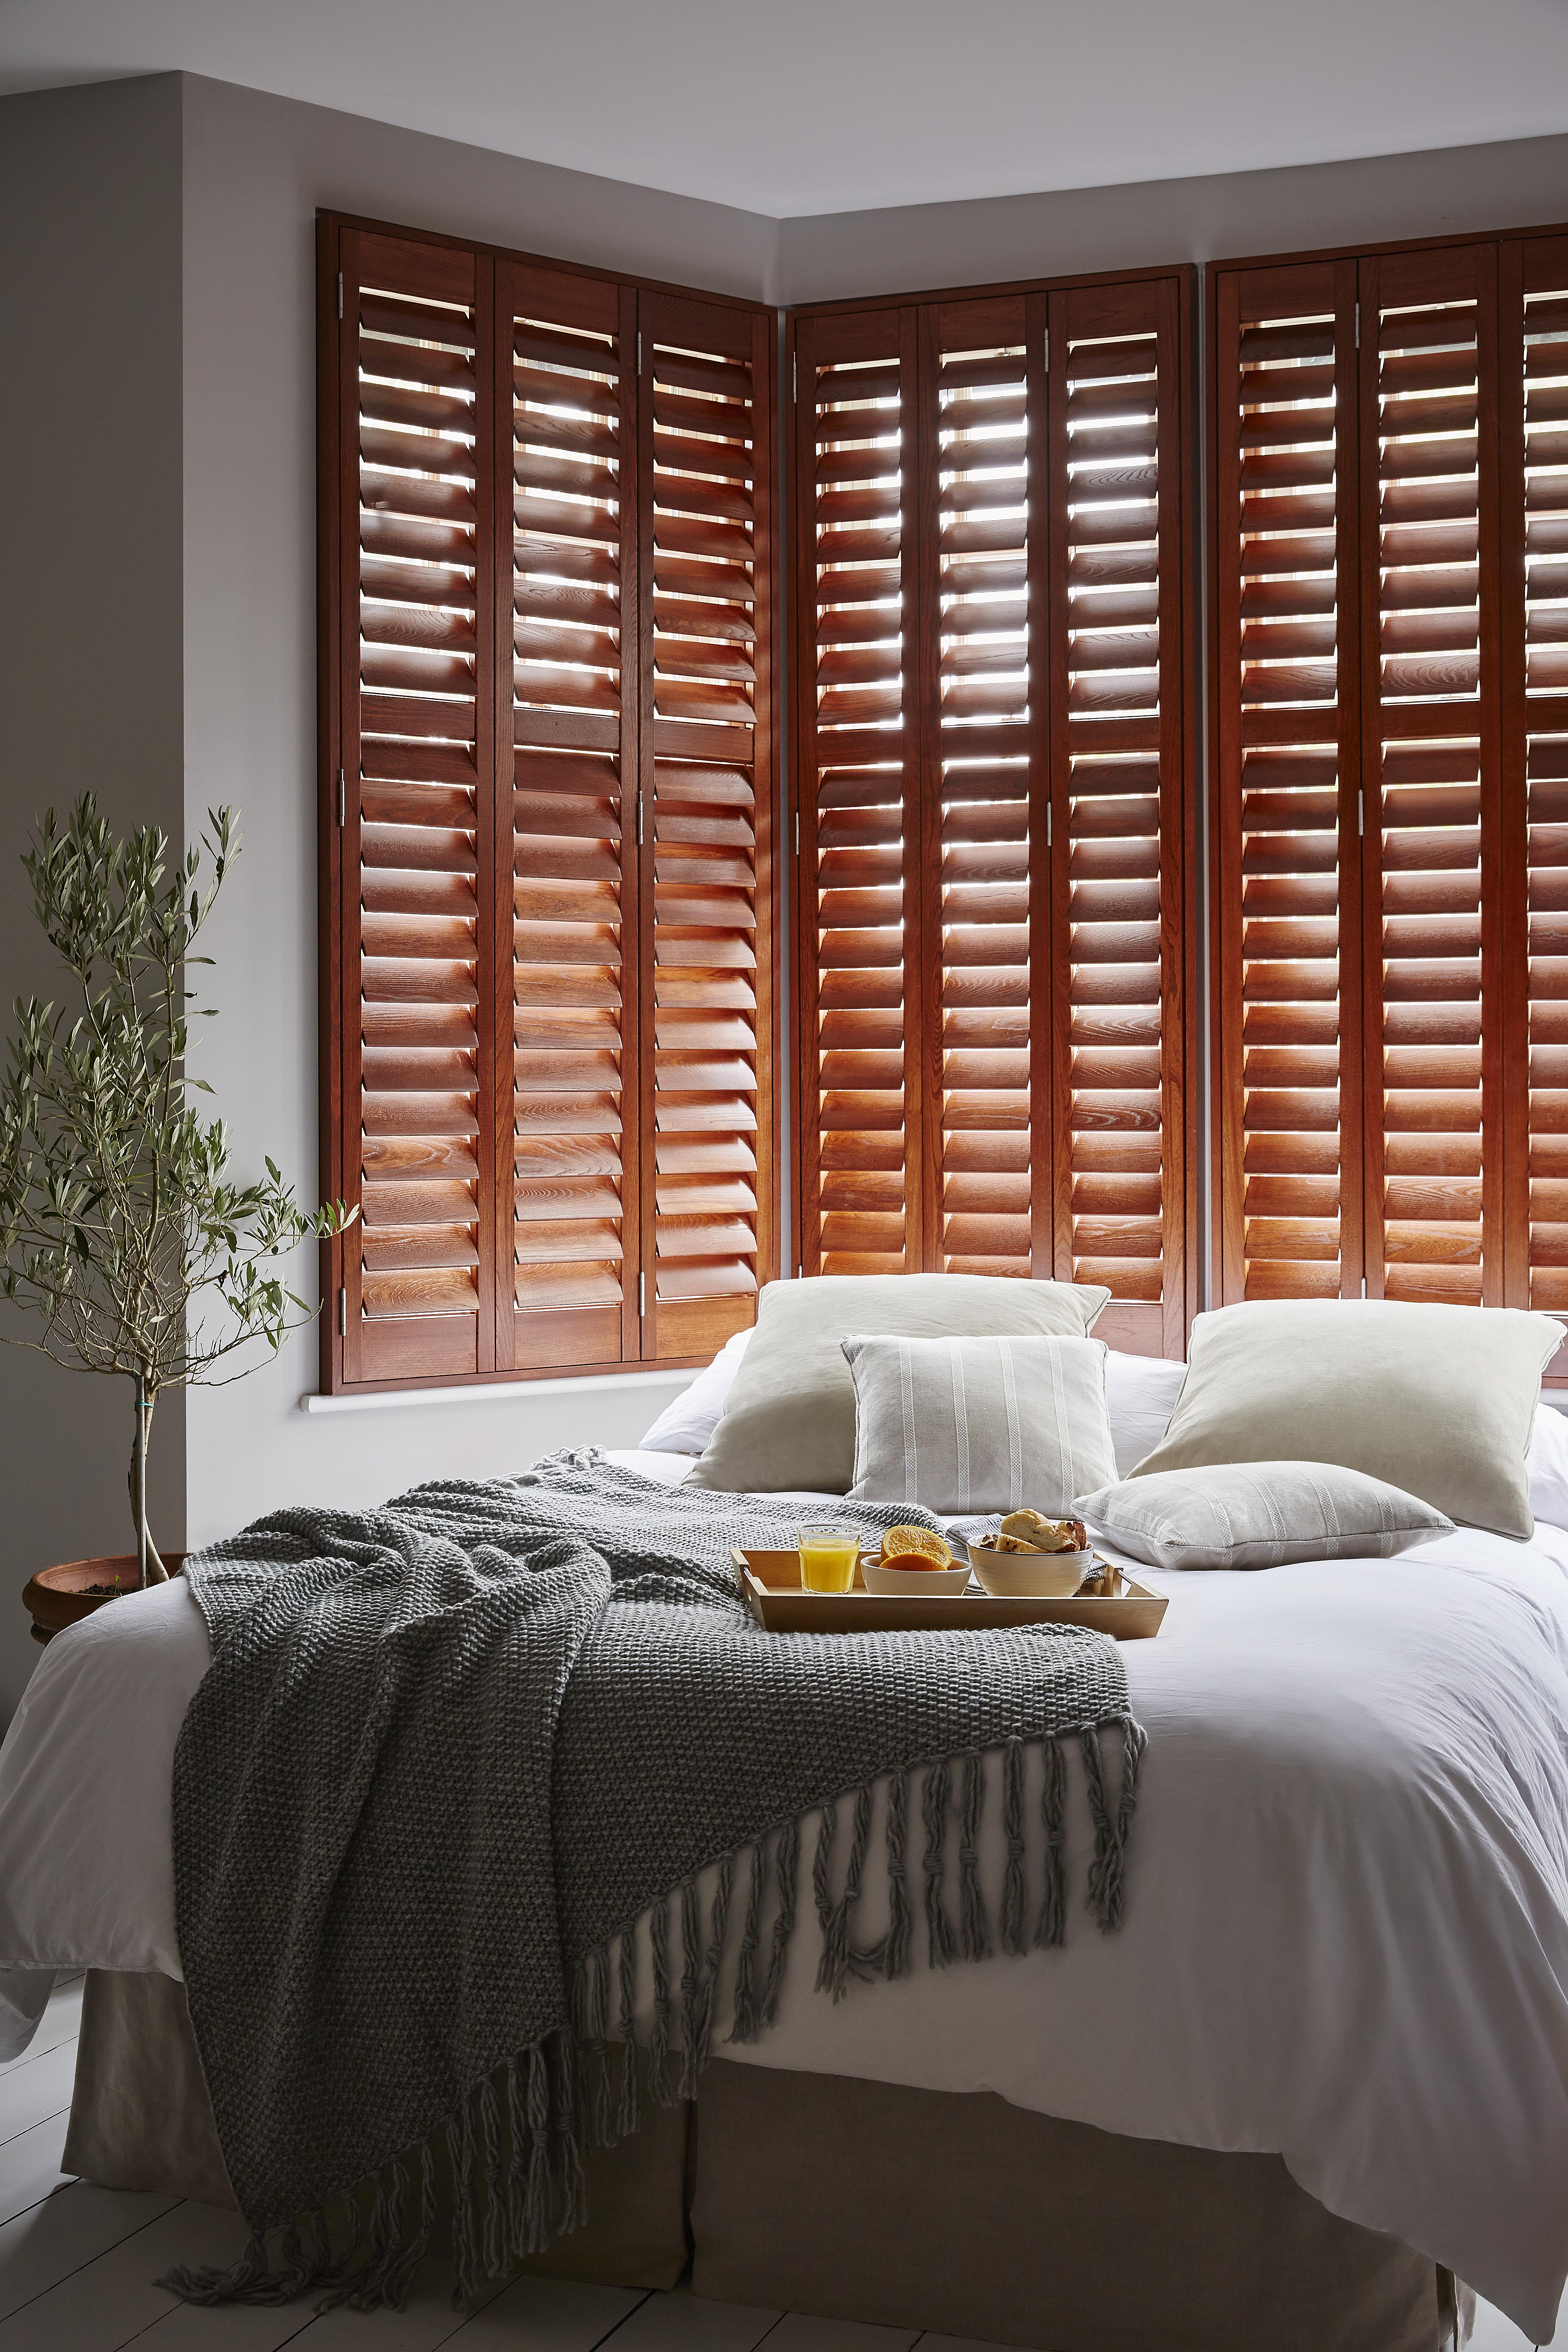 Blackout shutters for your windows